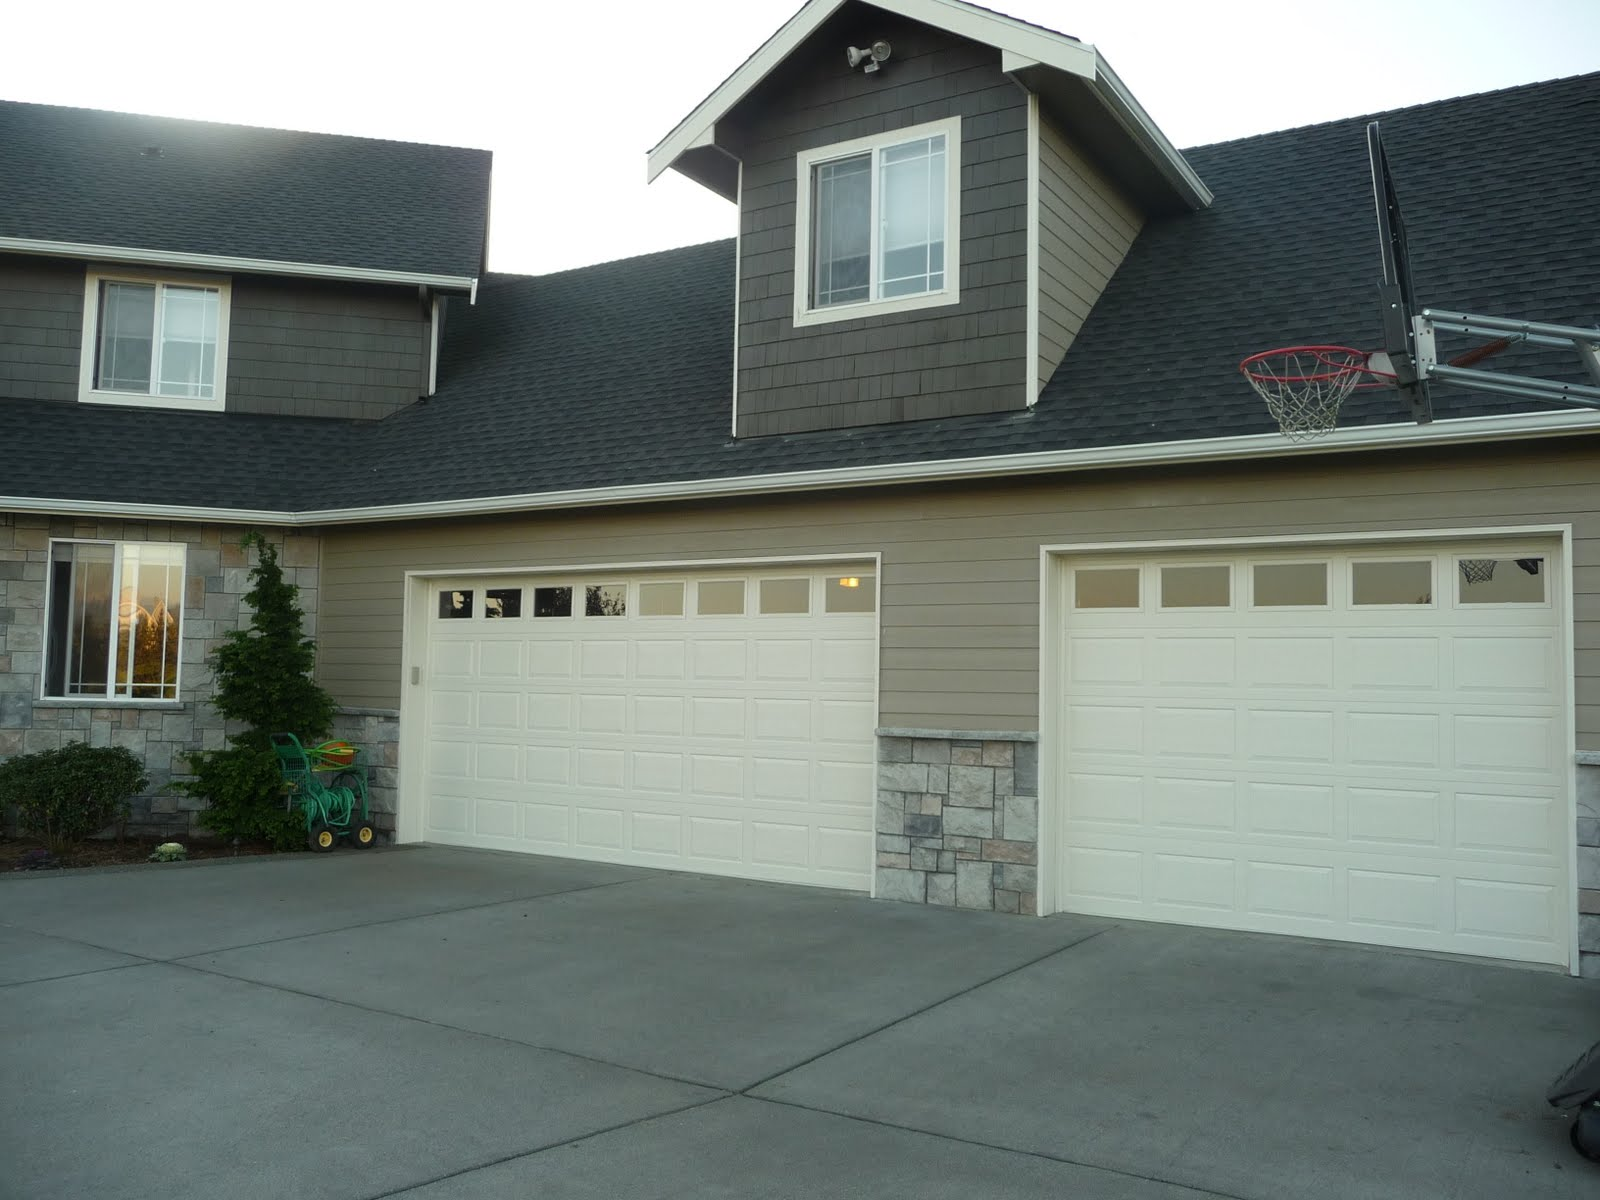 1200 #61604B The Garage Doors Look So Much Softer Now! We'd Like To Add Some Wide  image Walton Garage Doors 38131600